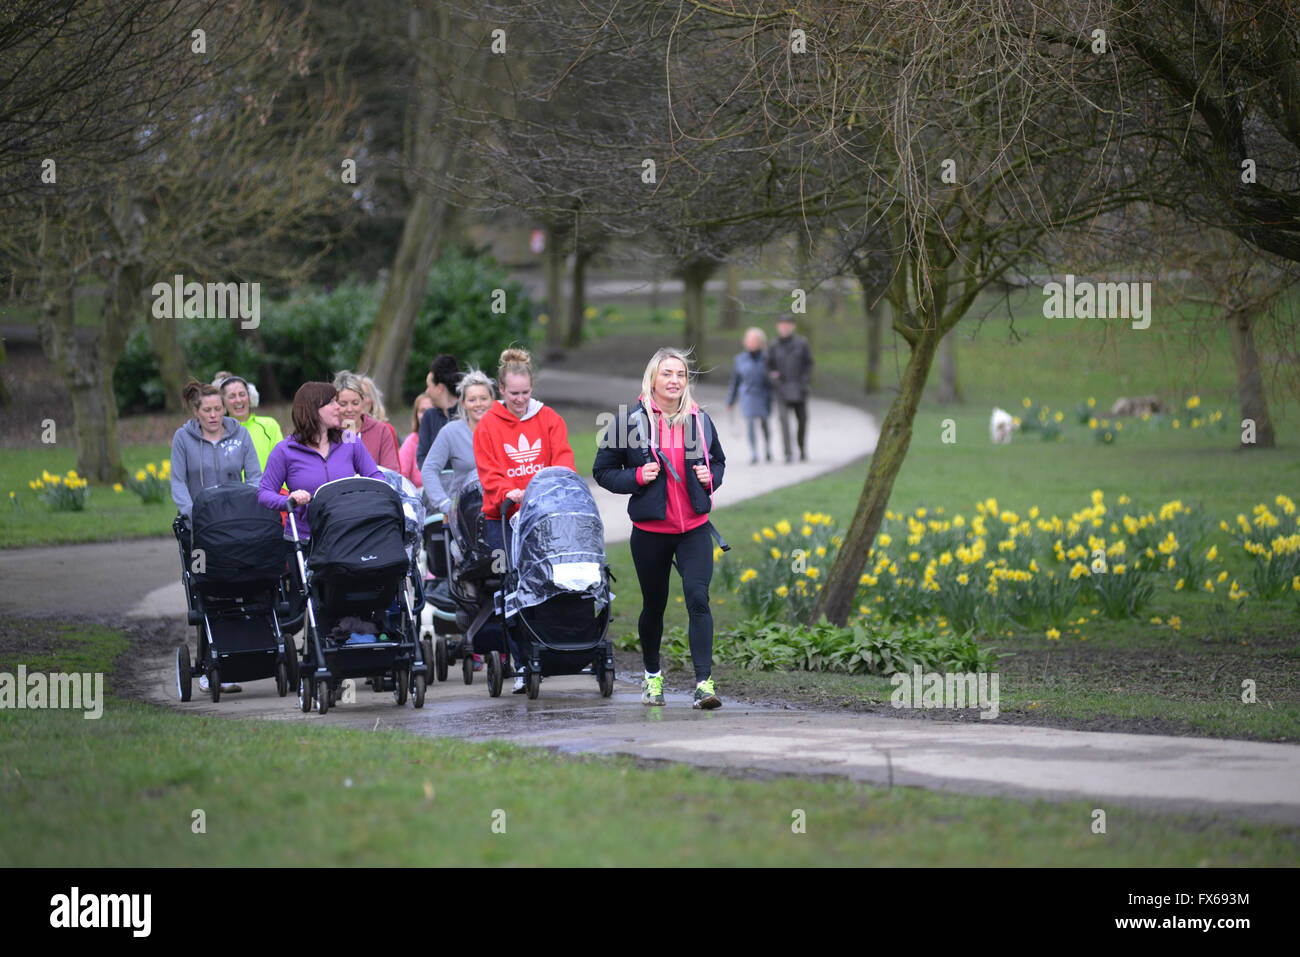 New mums exercising and keeping fit in the park. - Stock Image